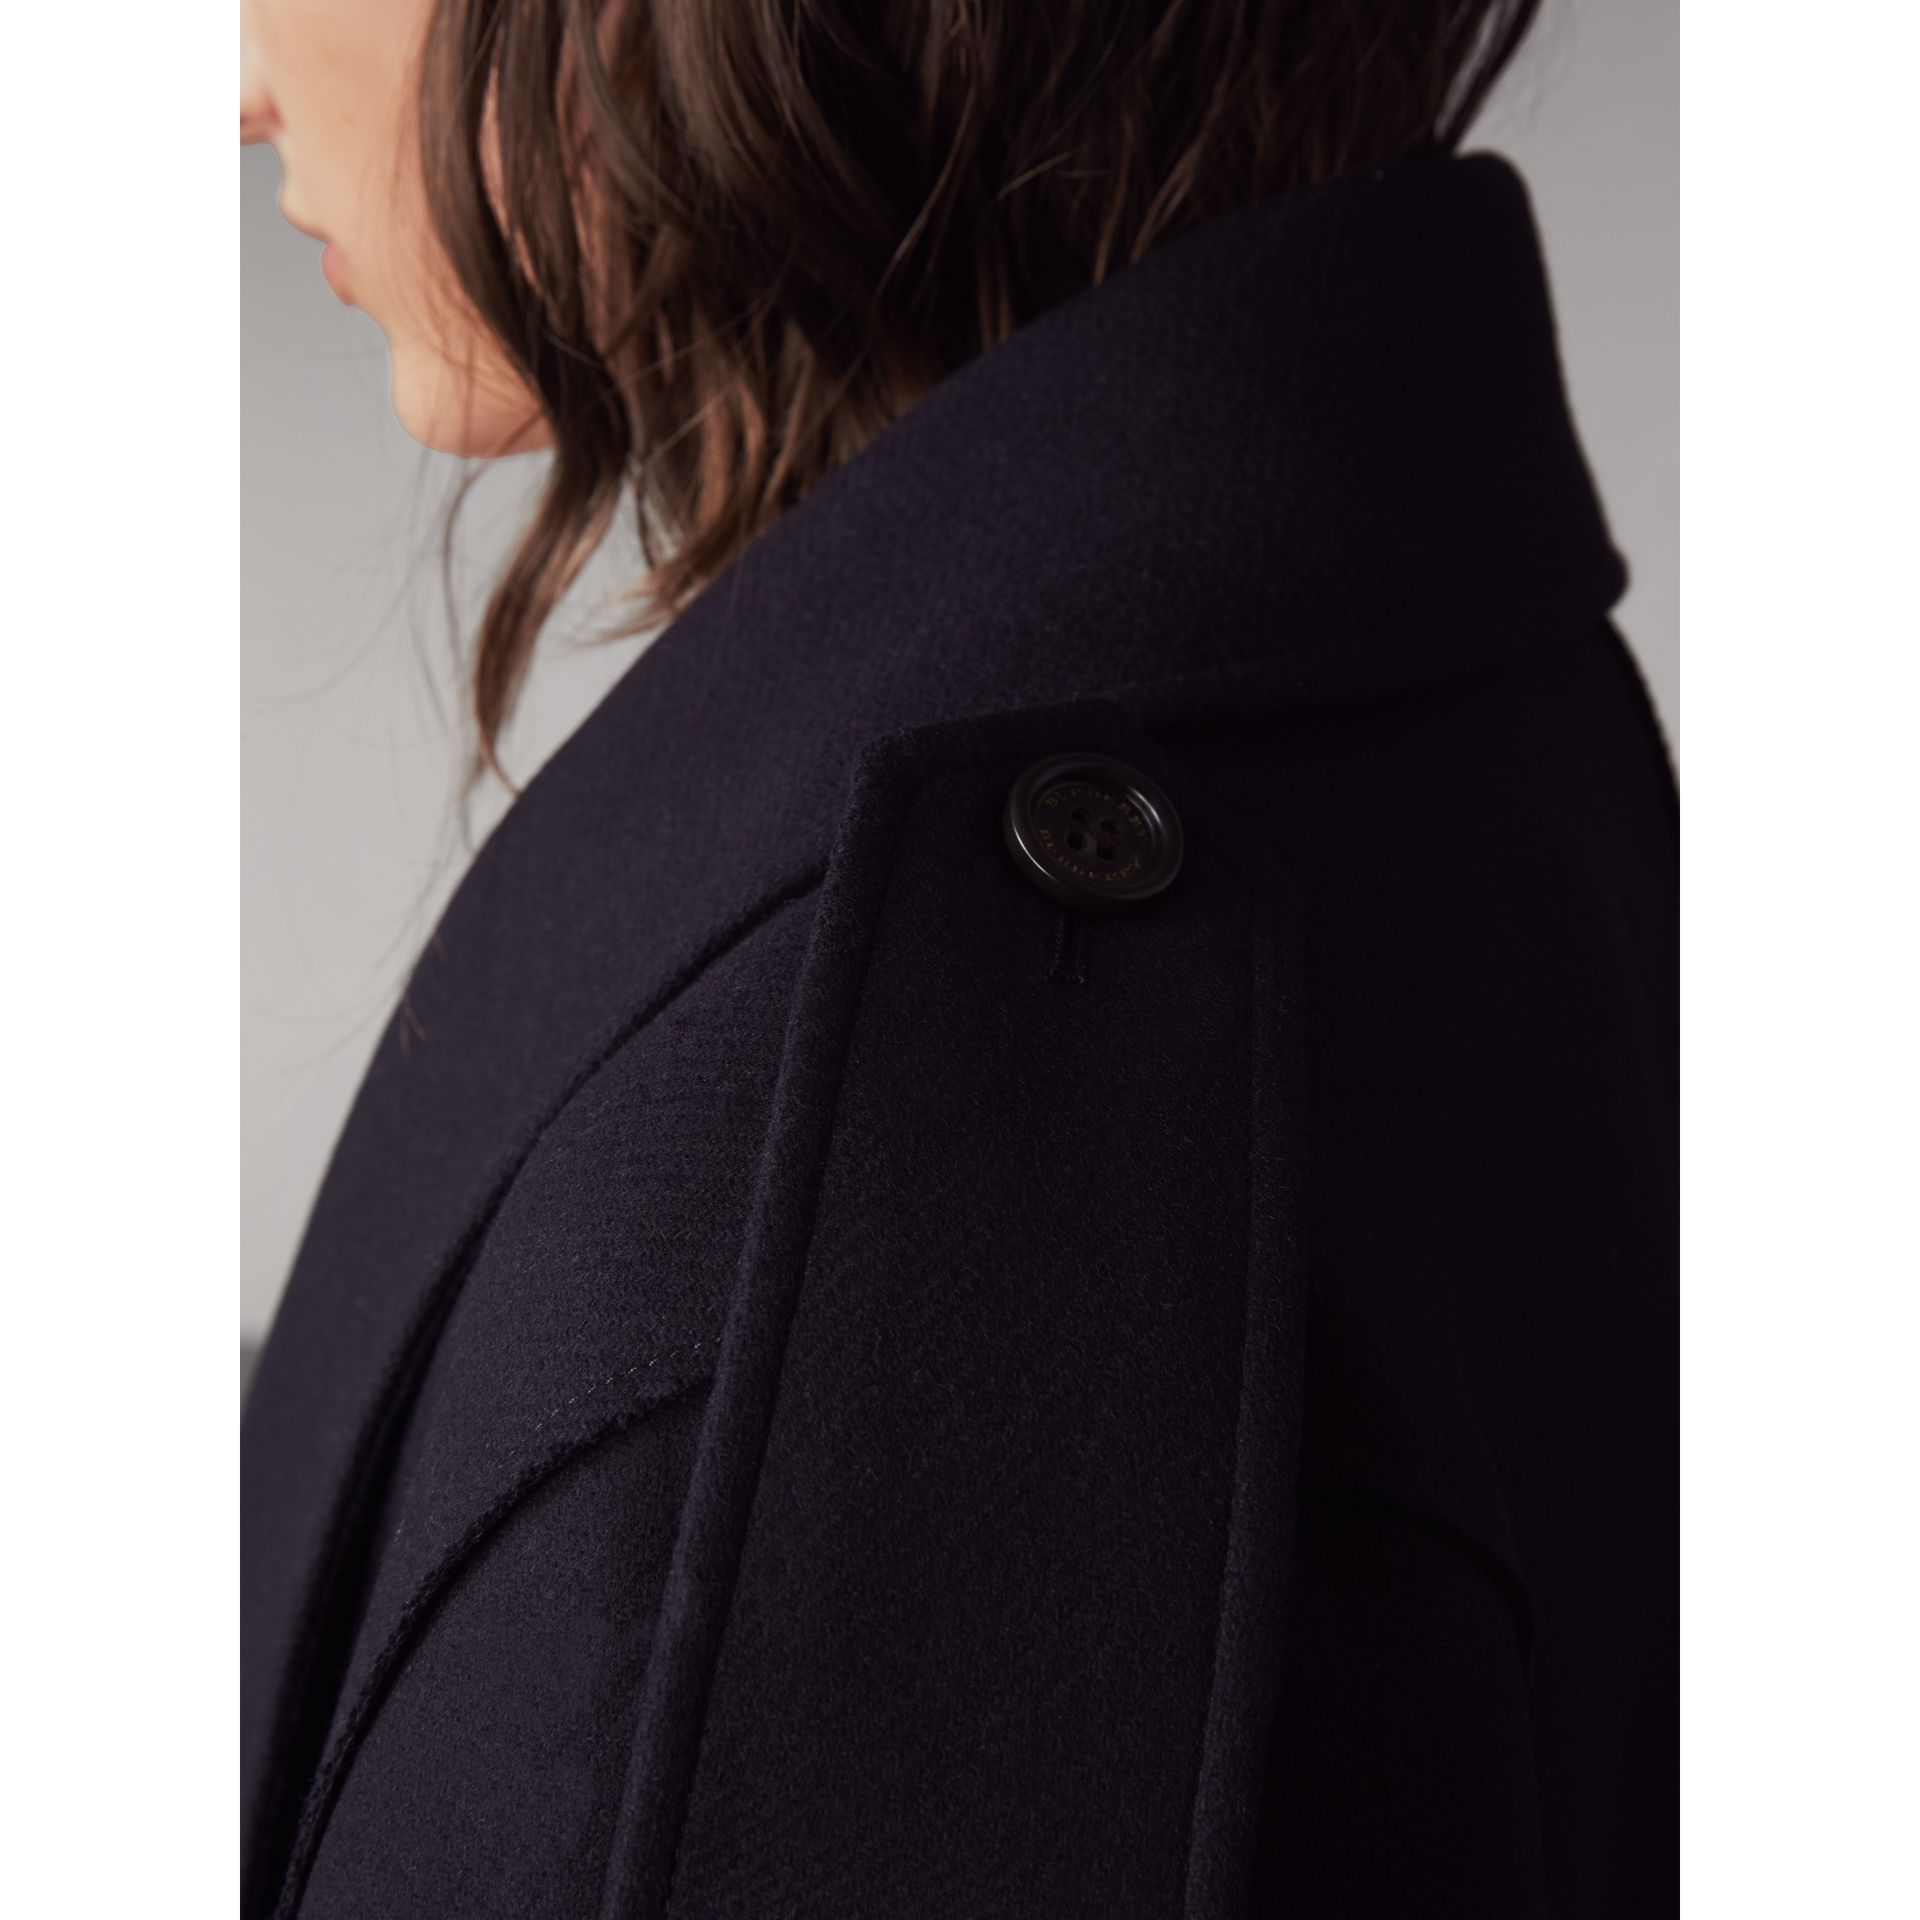 Wool Cashmere Blend Military Cape in True Navy - Women | Burberry United Kingdom - gallery image 2